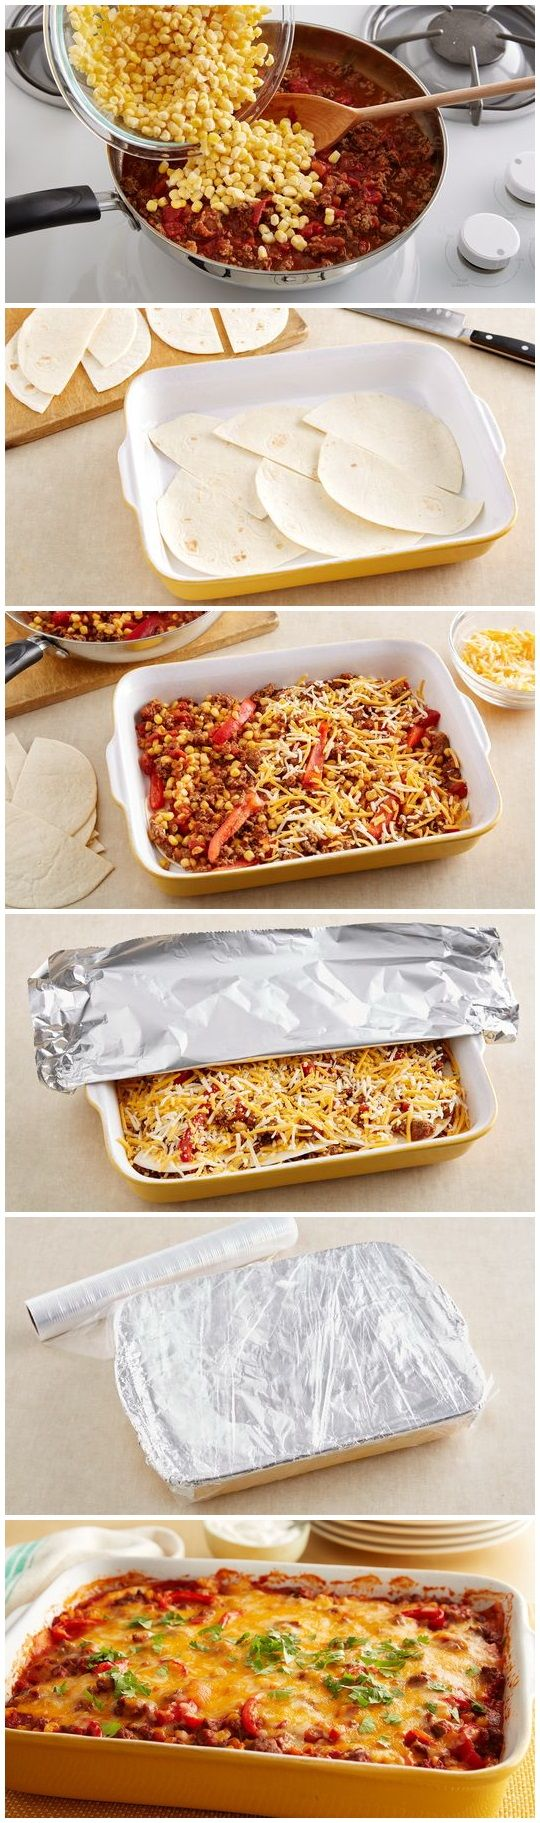 Prep time: 30 min Total time: 1 hr 15 min Servings: 8 INGREDIENTS: 1 lb lean (at least 80%) ground beef 1 package (1 oz) Old El Paso™ 25% less sodium taco...